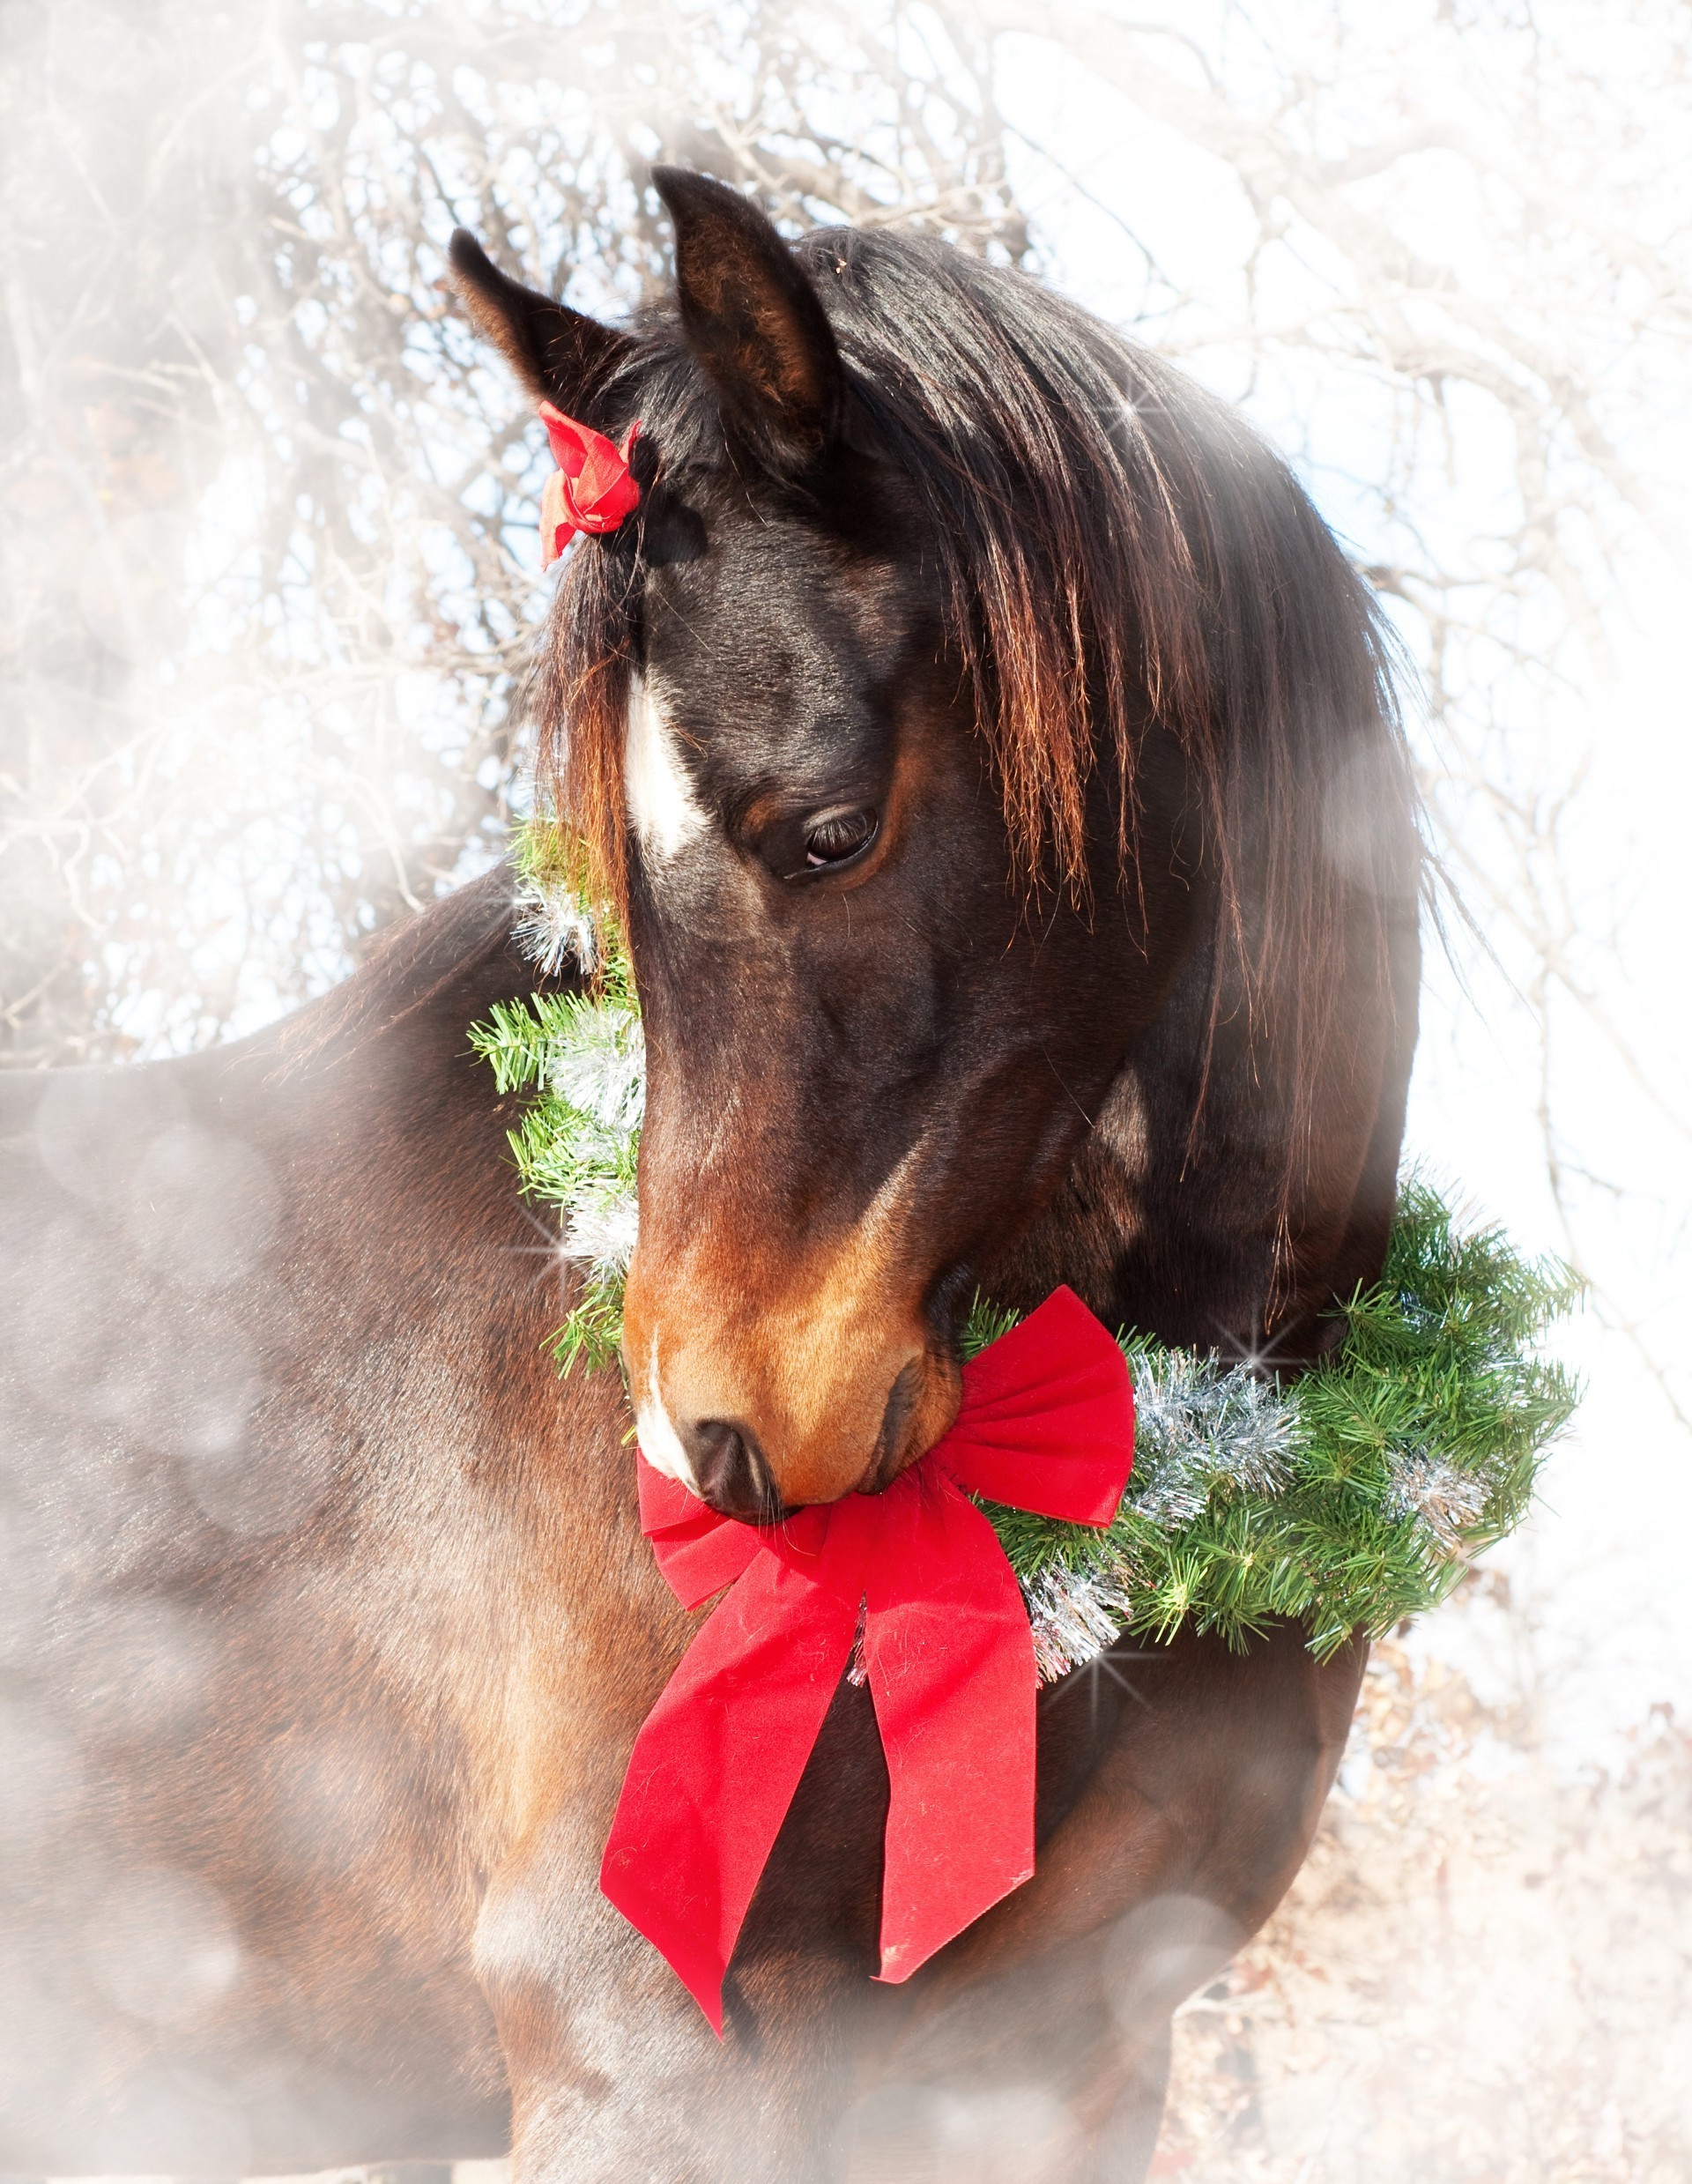 Horse with Christmas wreath